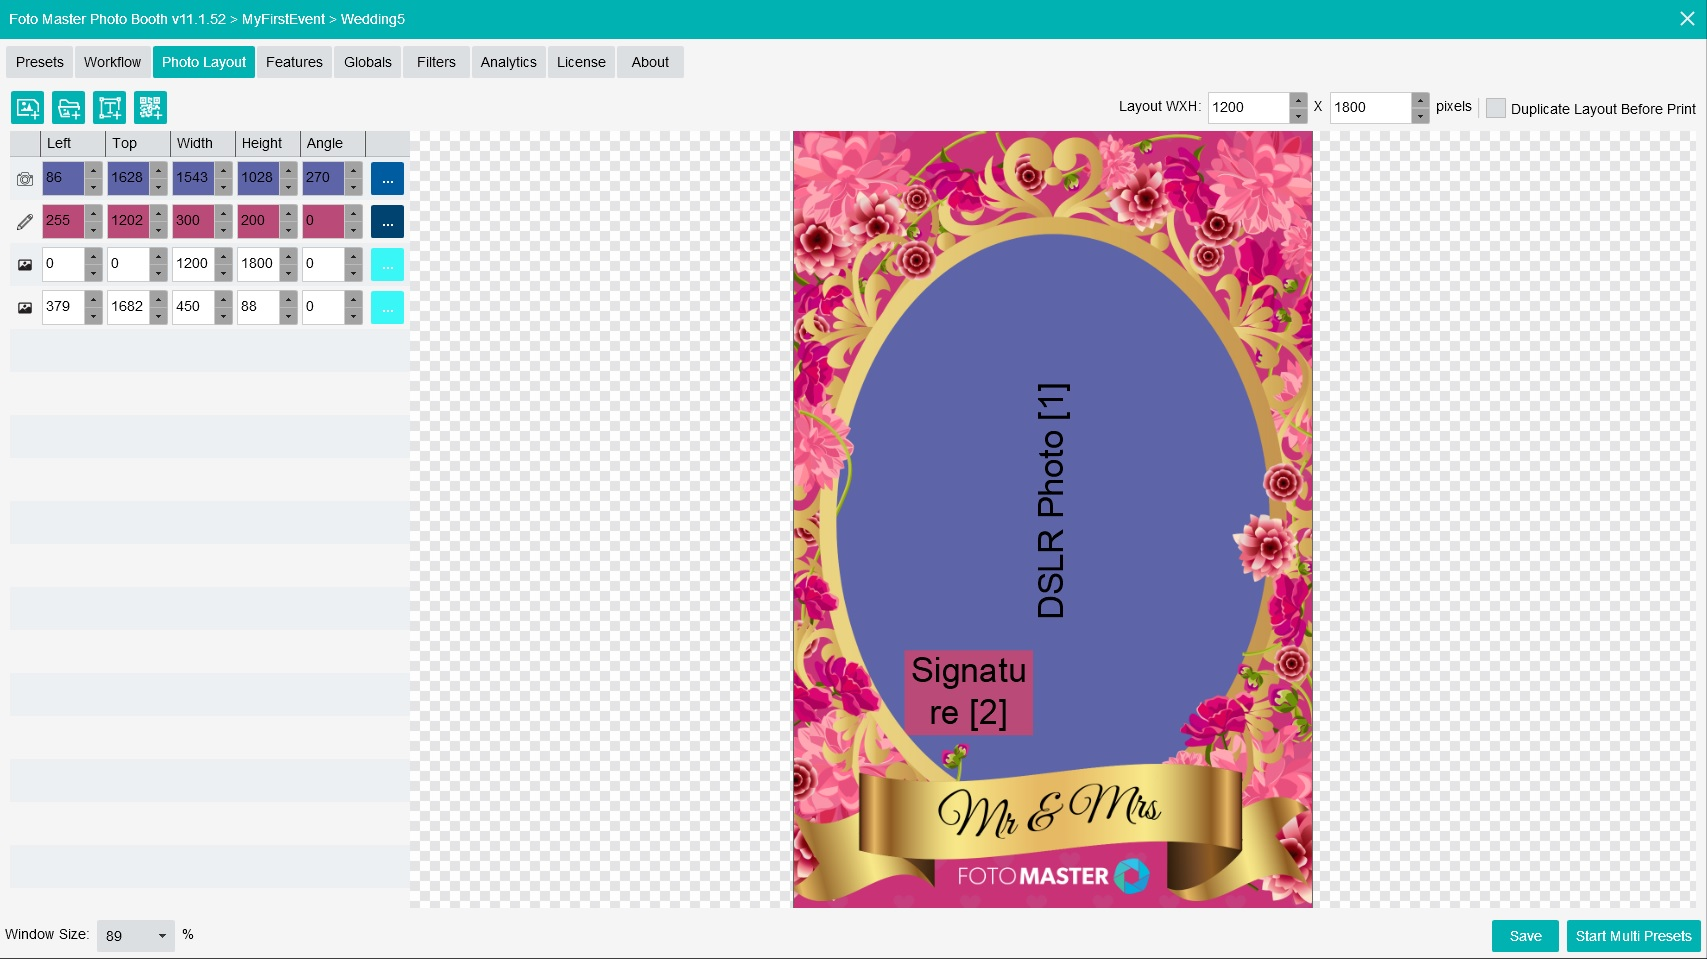 A screenshot from the Foto Master Photo Booth software demonstrating V11 Layout Screen